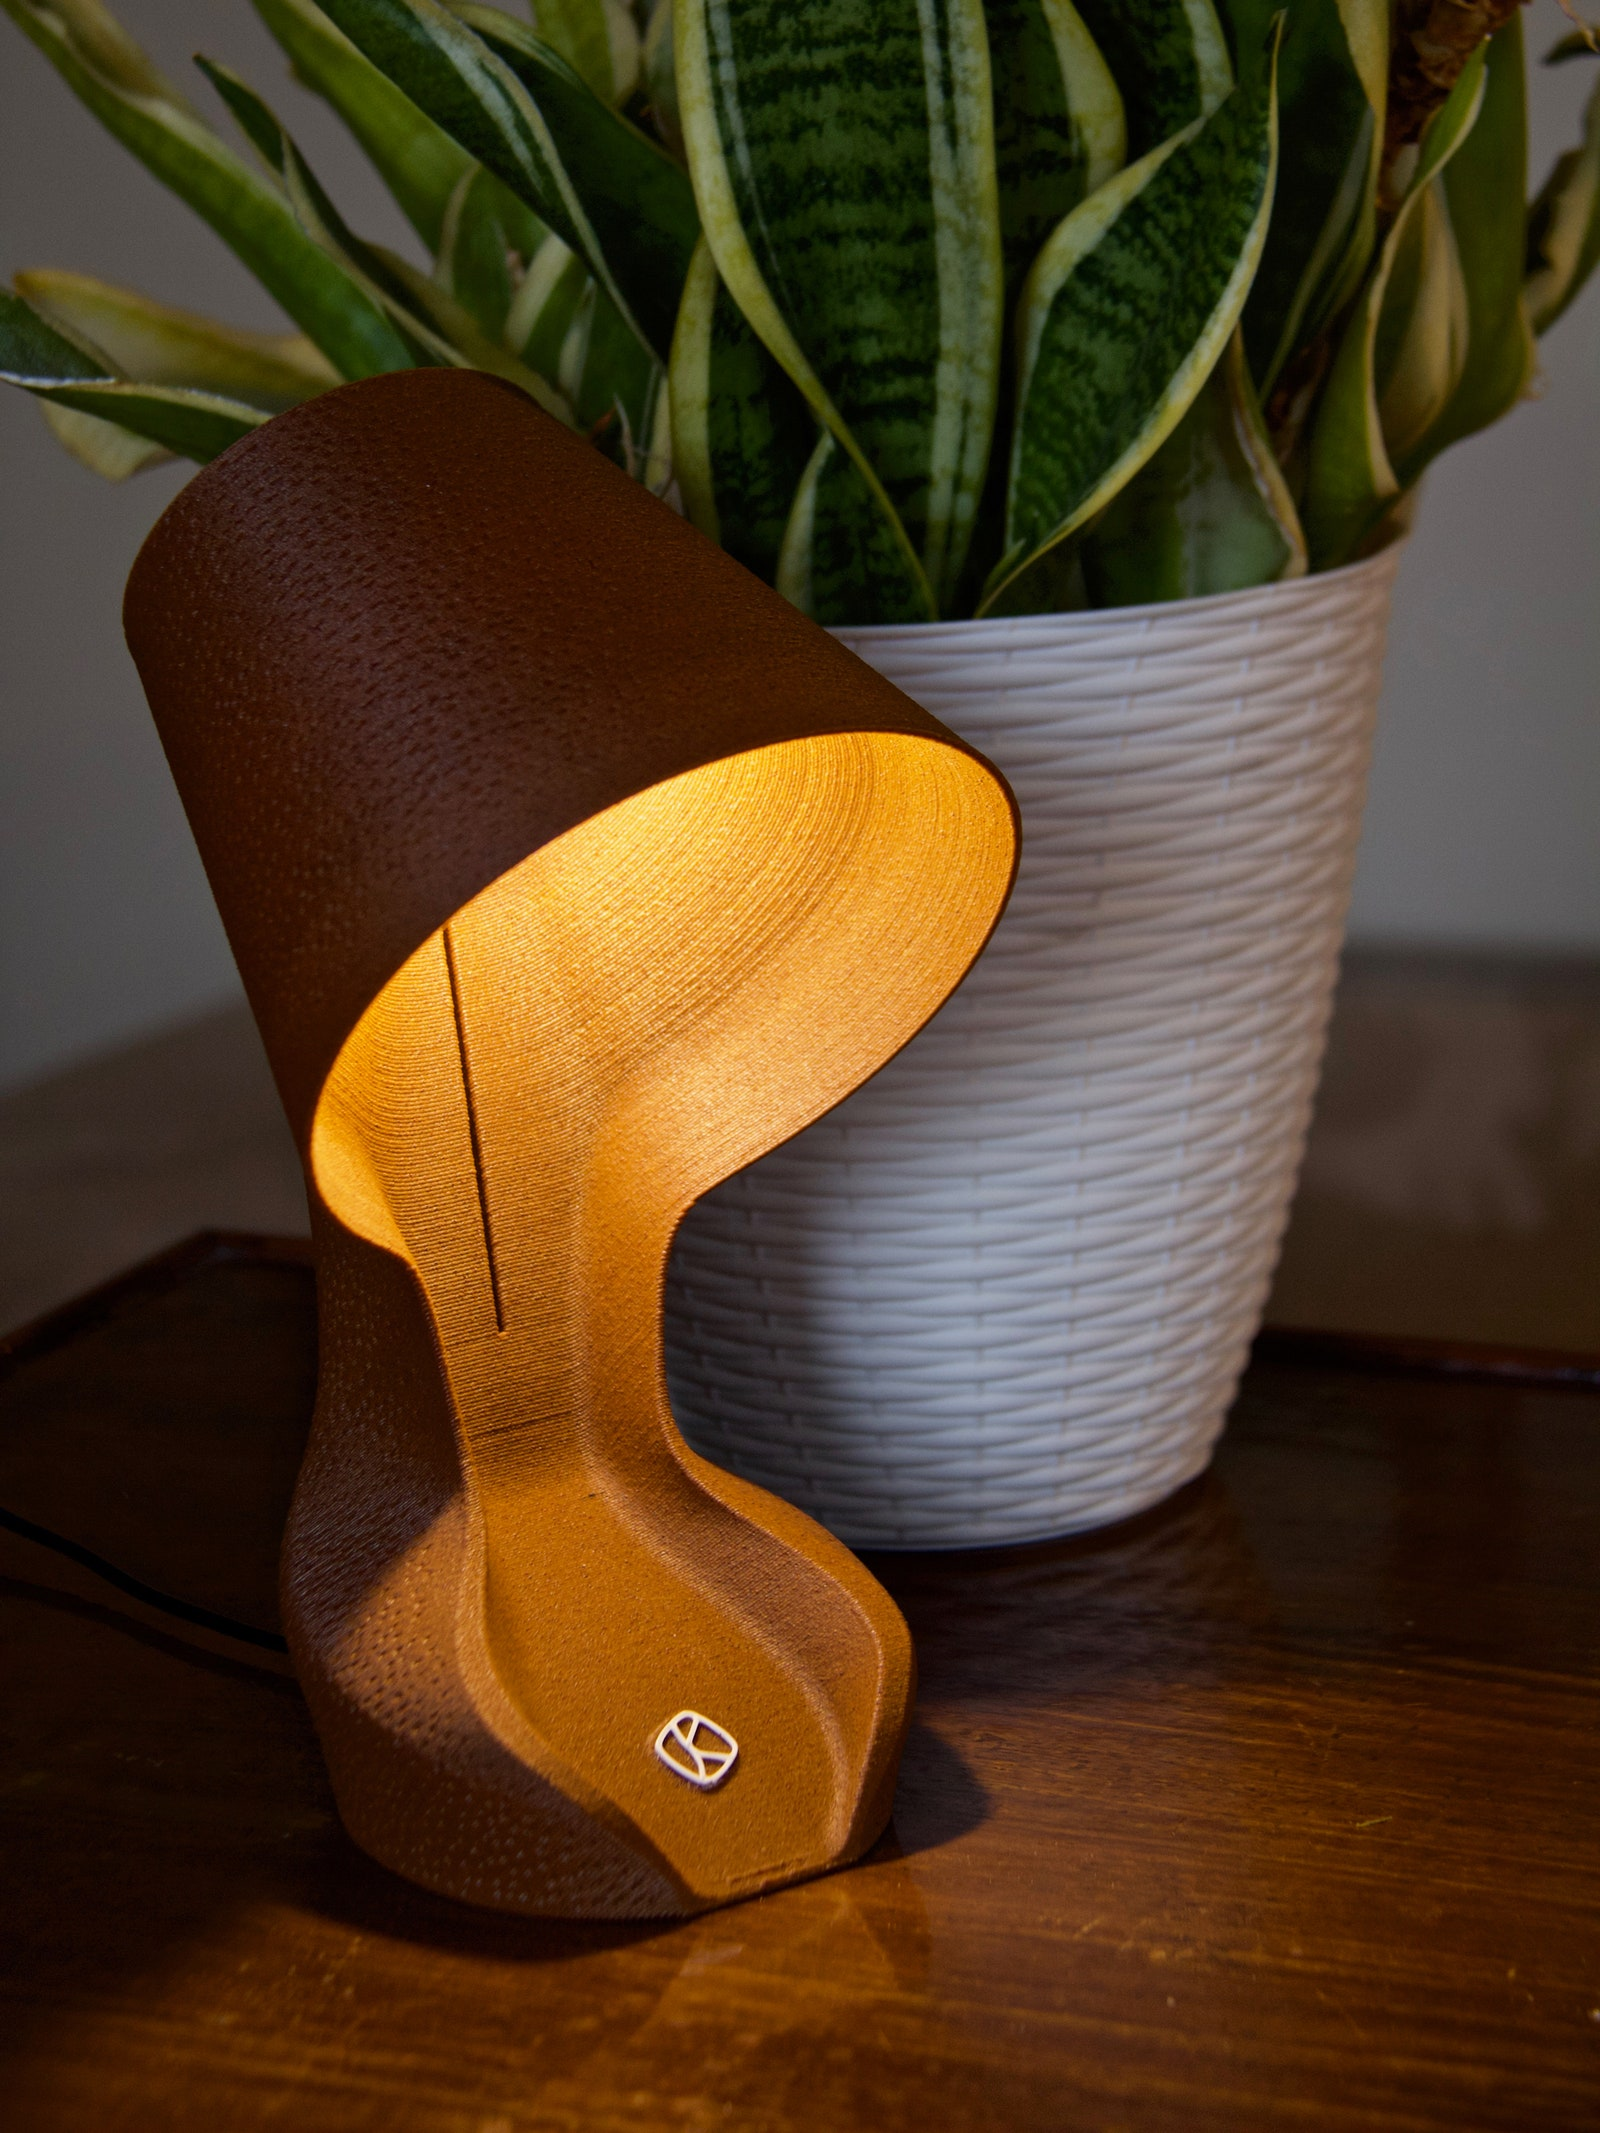 Read more about the article This Lamp Is 3D-Printed From Orange Peels